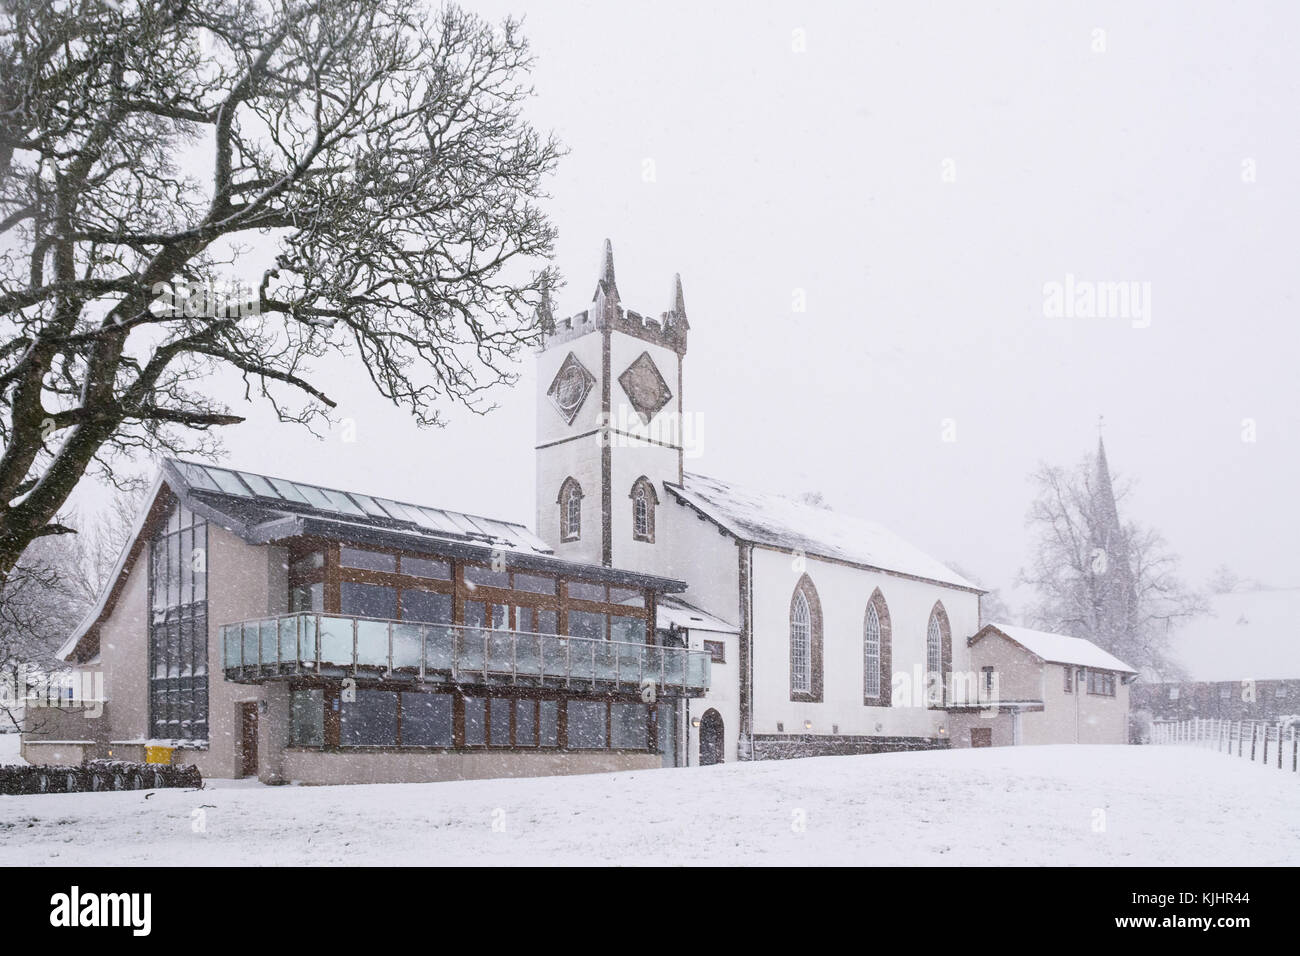 Killearn Village Hall in winter, Killearn, Stirlingshire, Scotland UK - Stock Image